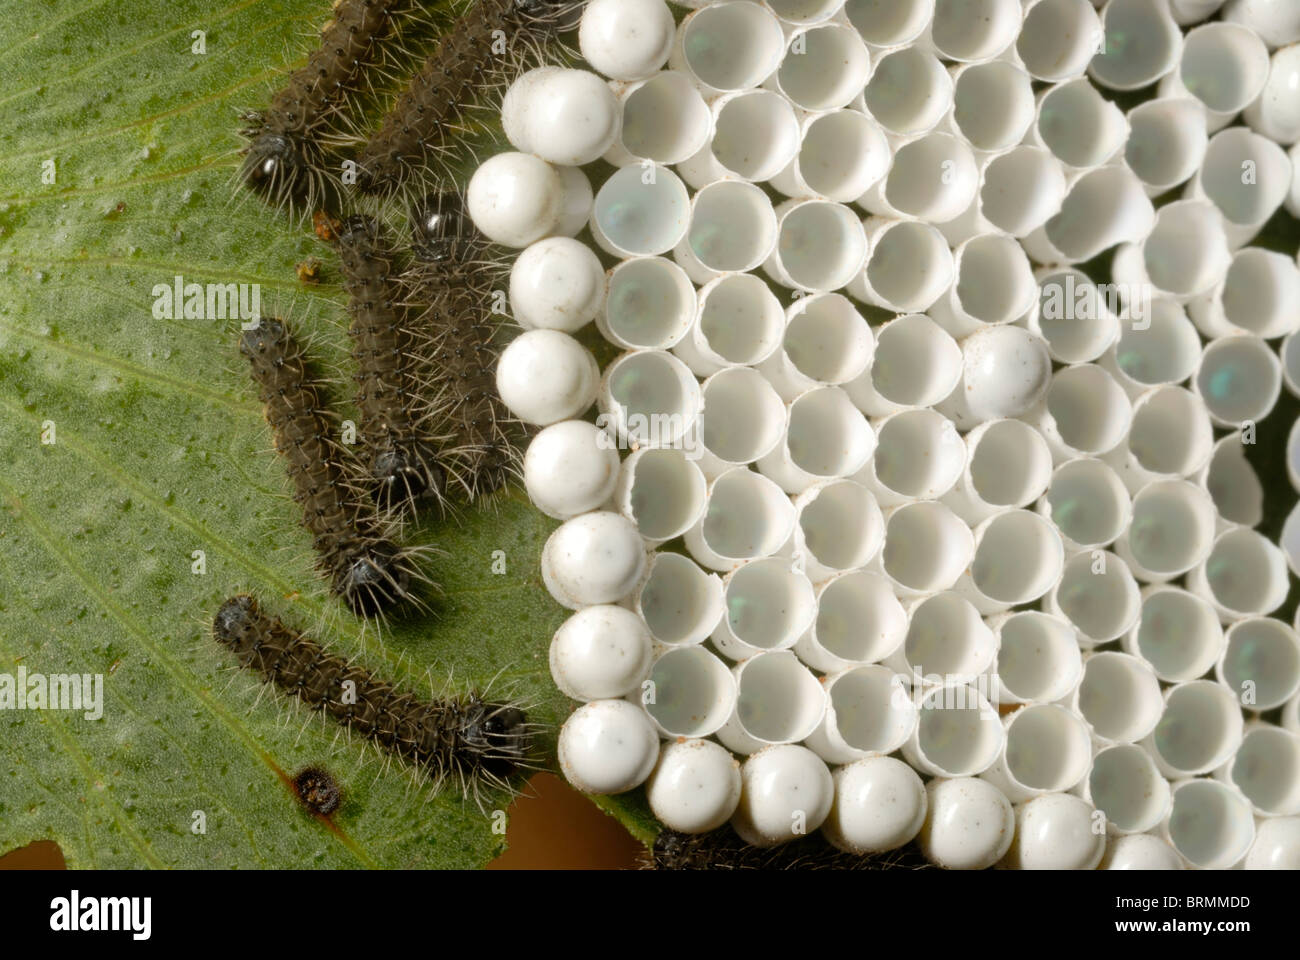 Hatched and unhatched Mopane worm eggs on a mopane leaf - Stock Image